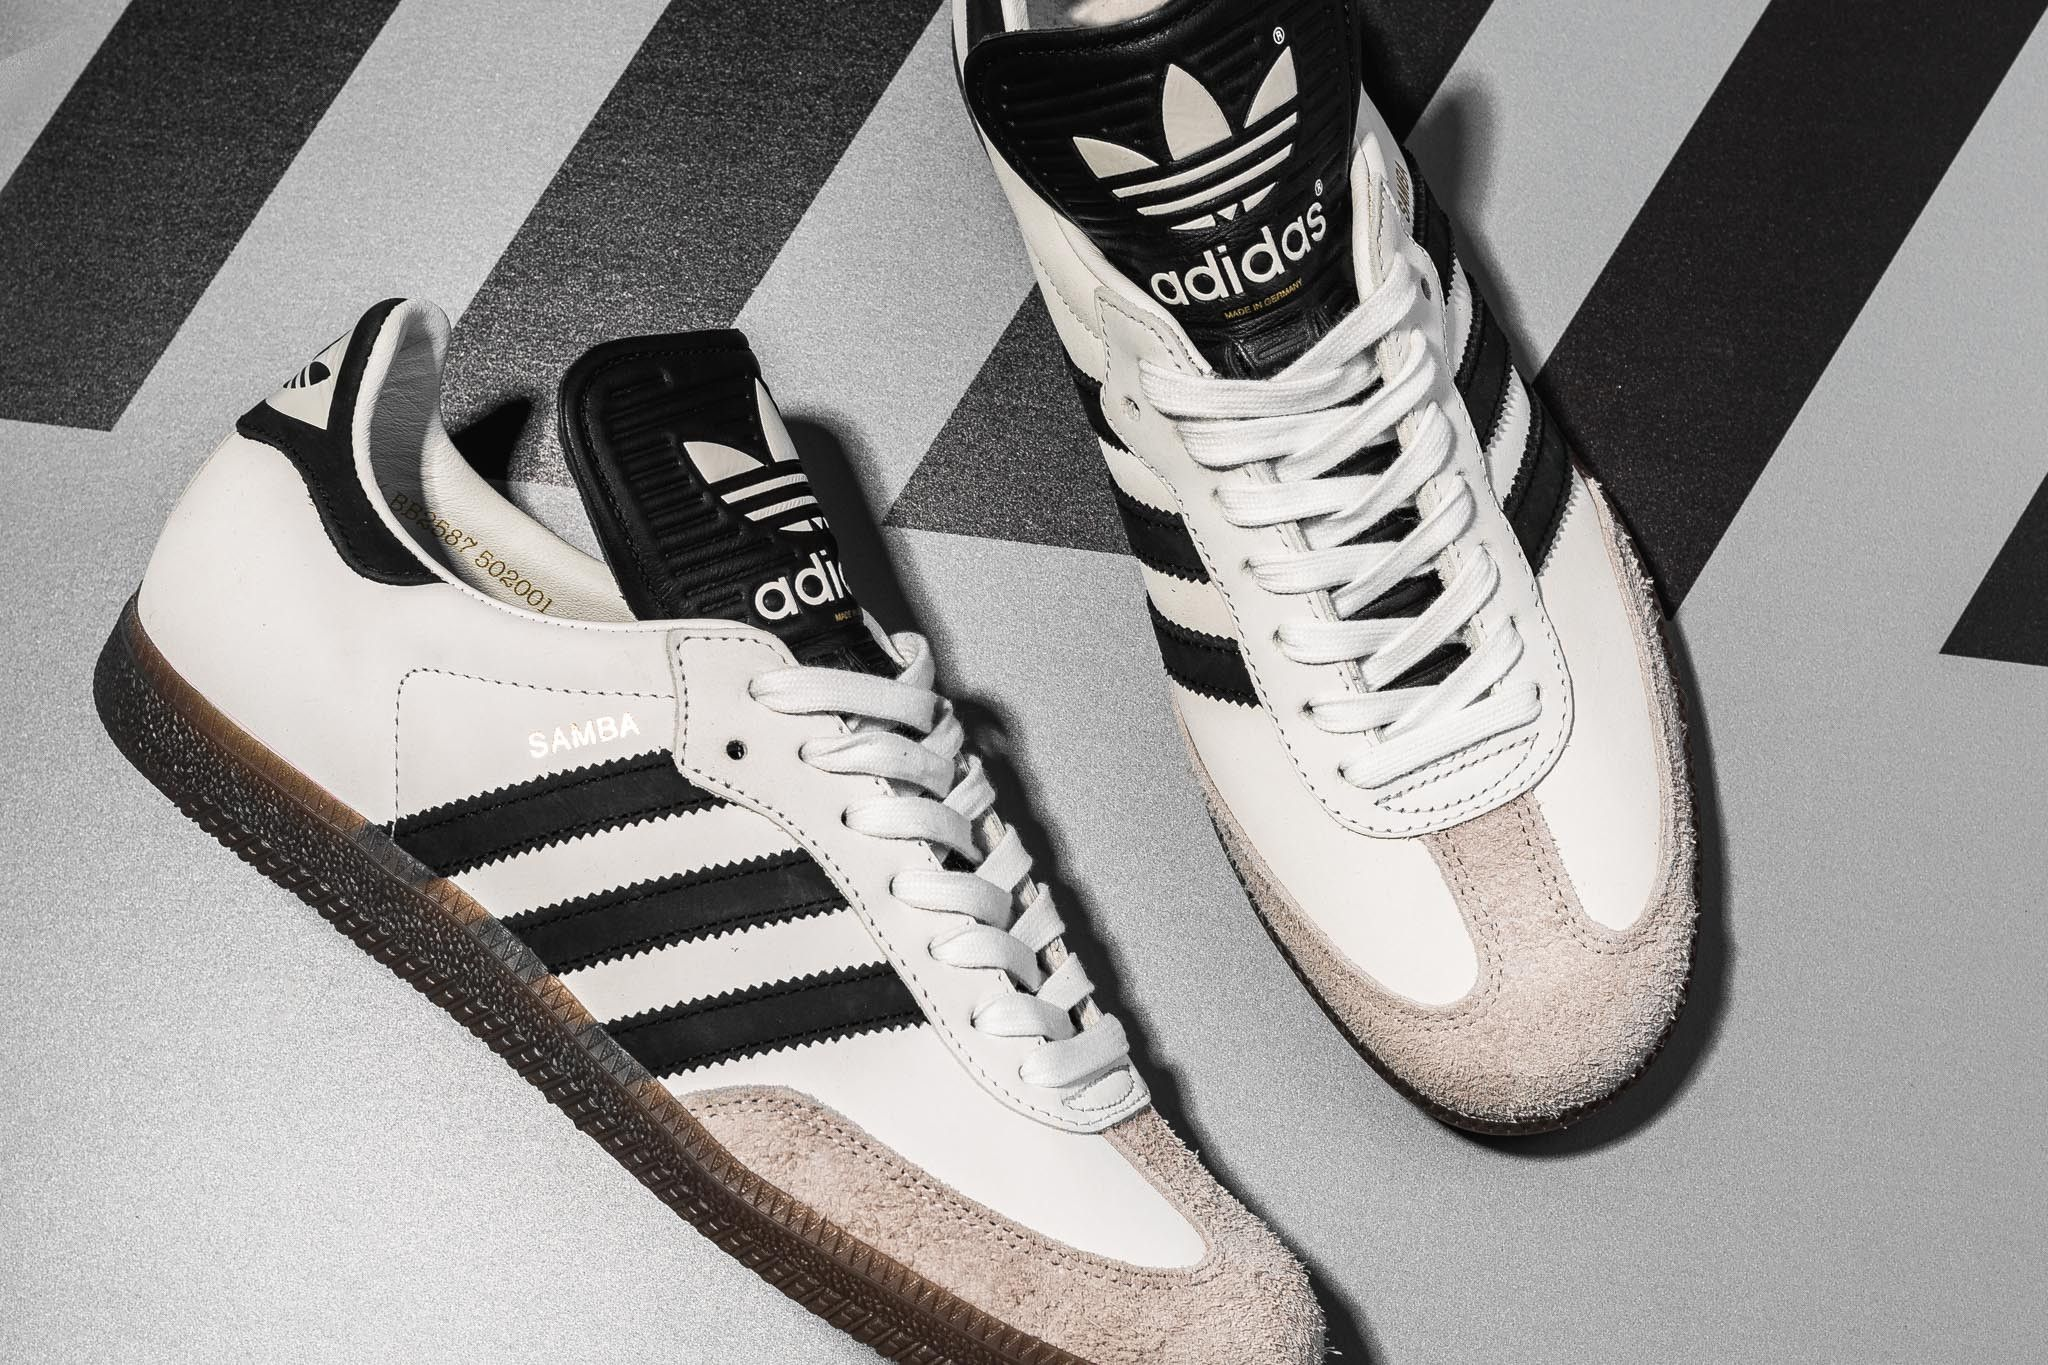 adidas Samba OG - Made in Germany